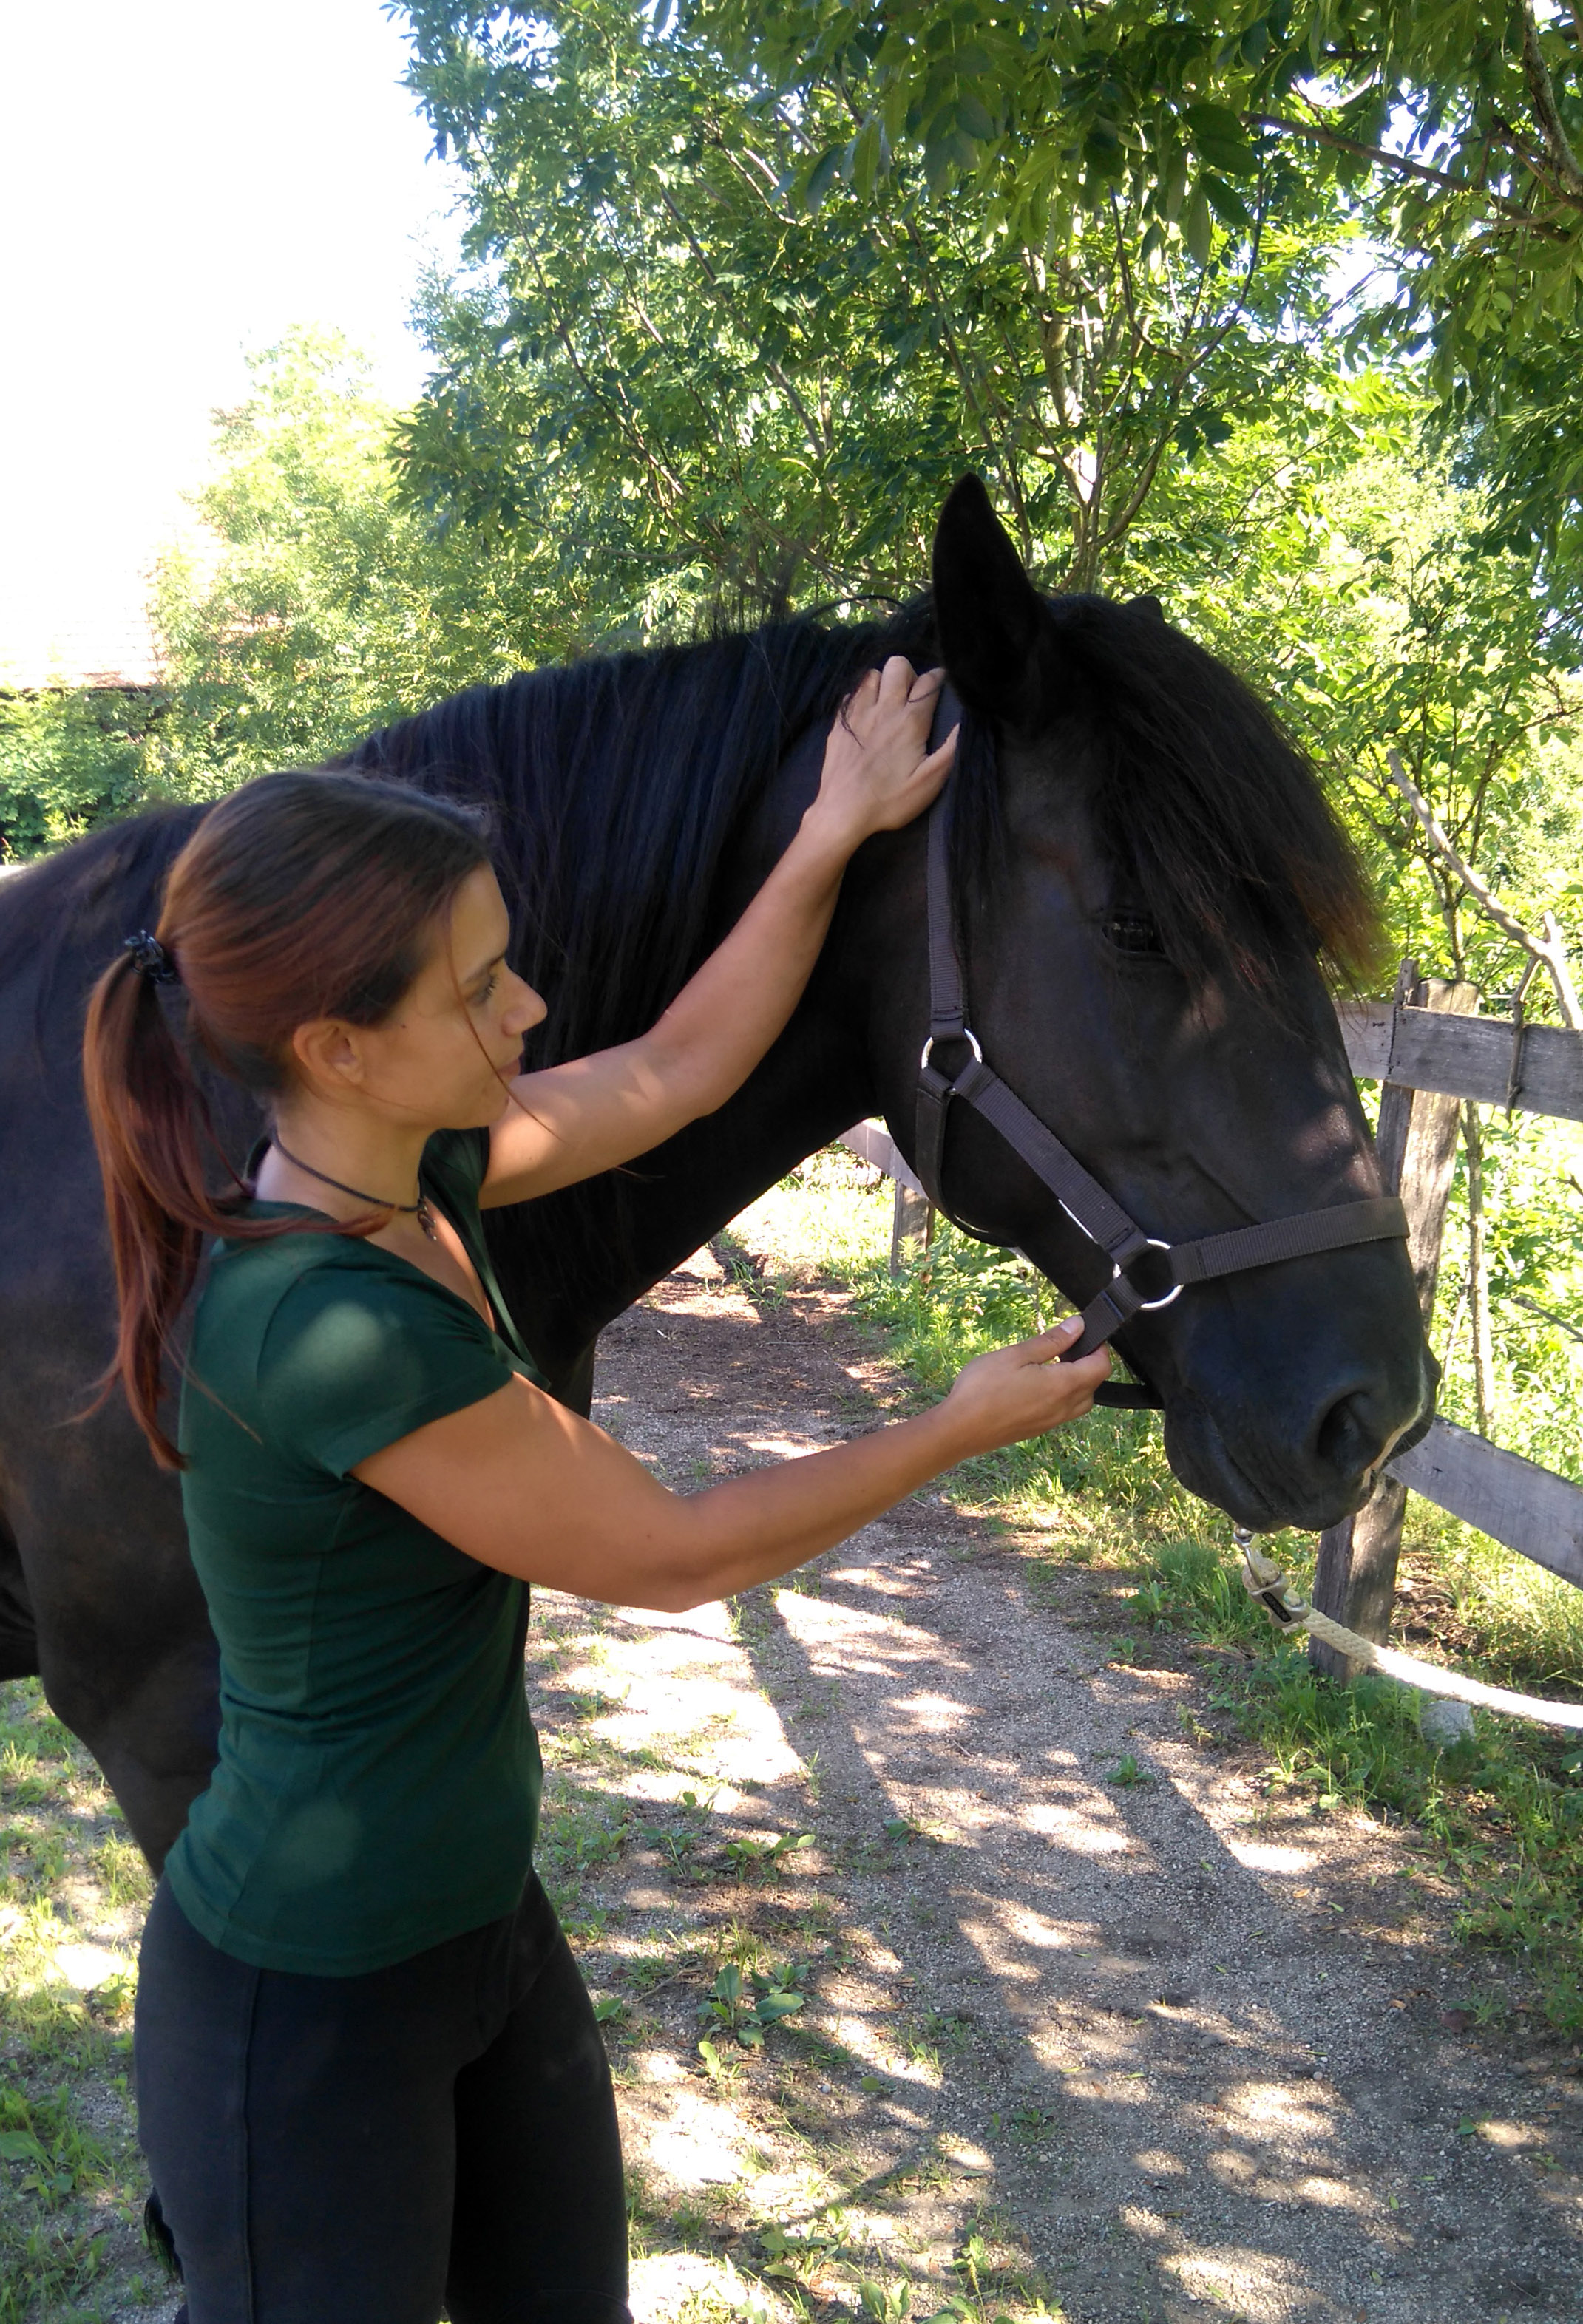 The Equine Neck as an Indicator of Good (or Bad) Training: Part 3